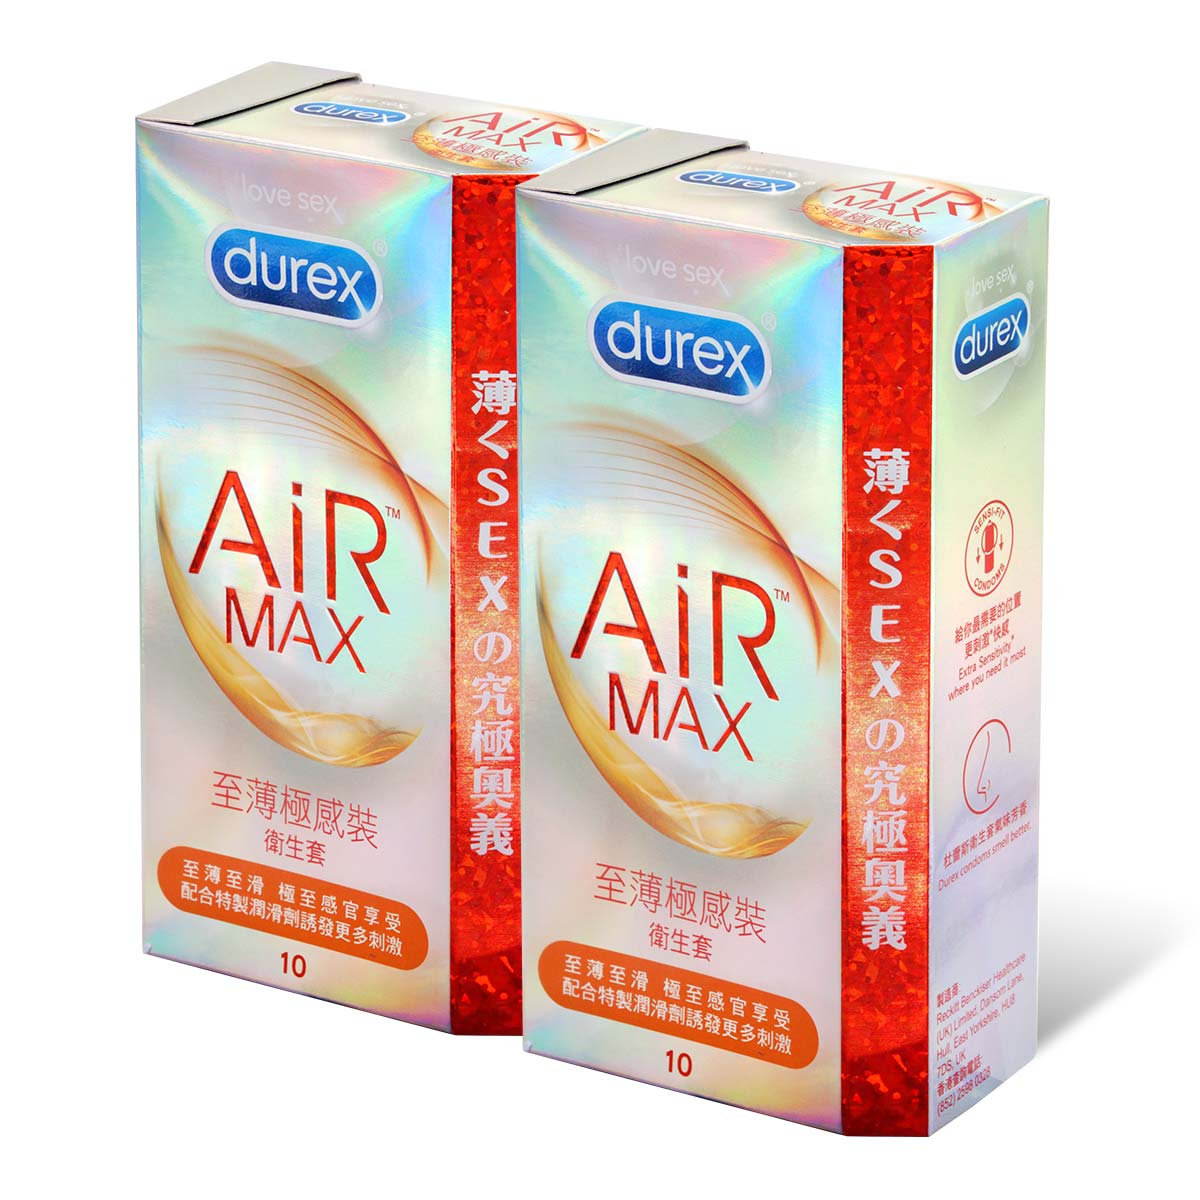 Durex Air Max Combo Set 20 Pieces Condom